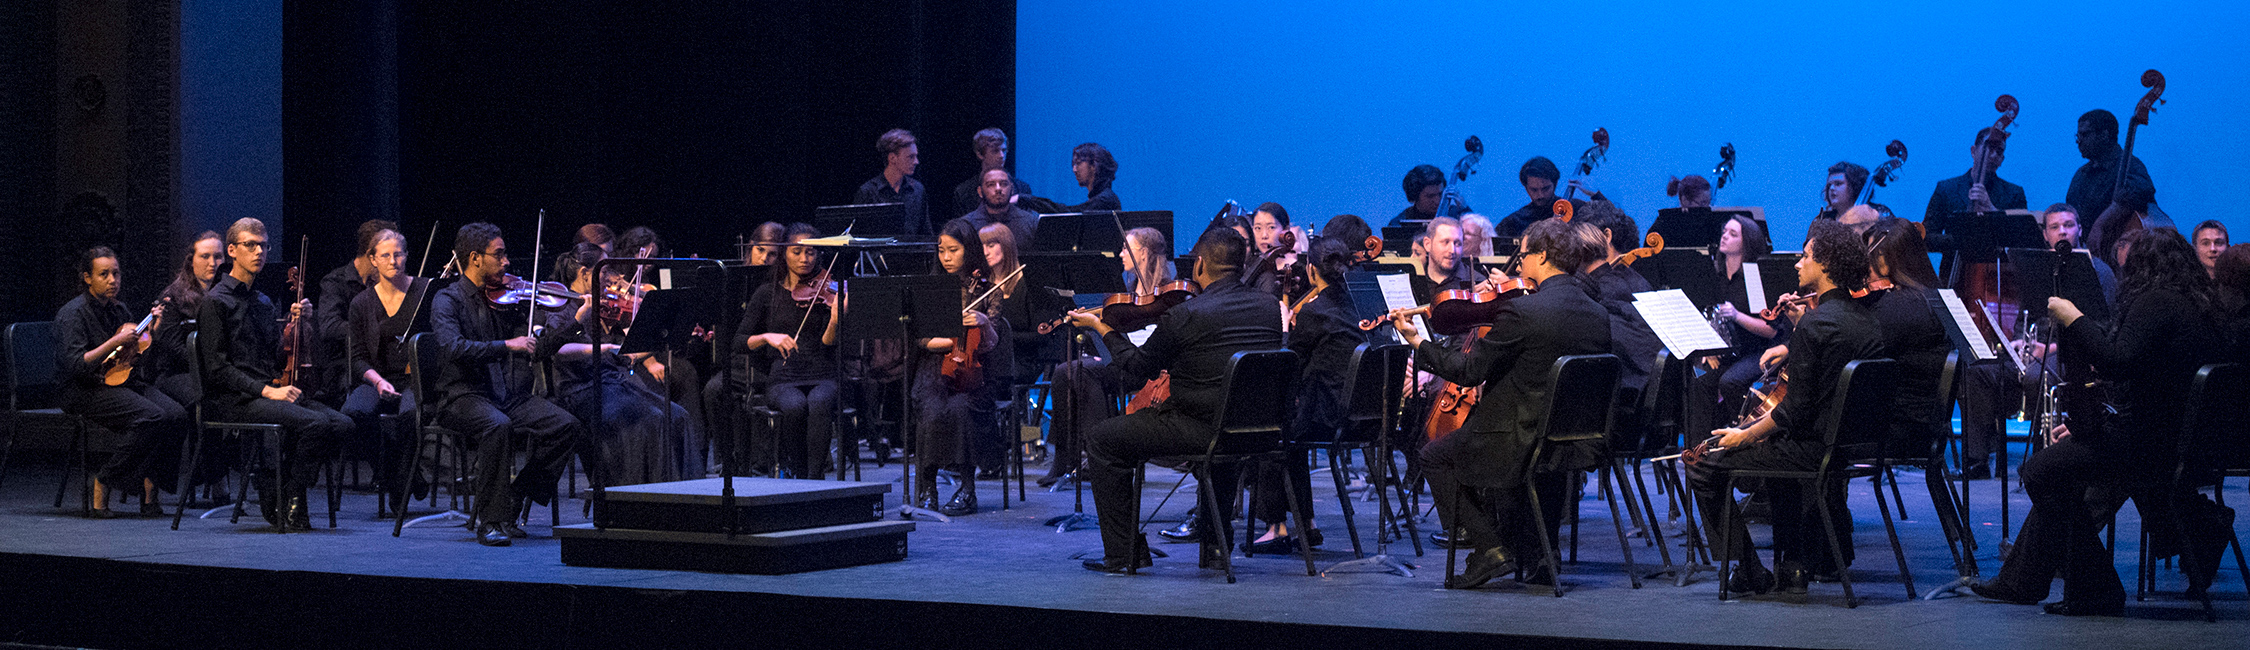 chamber orchestra performing on stage